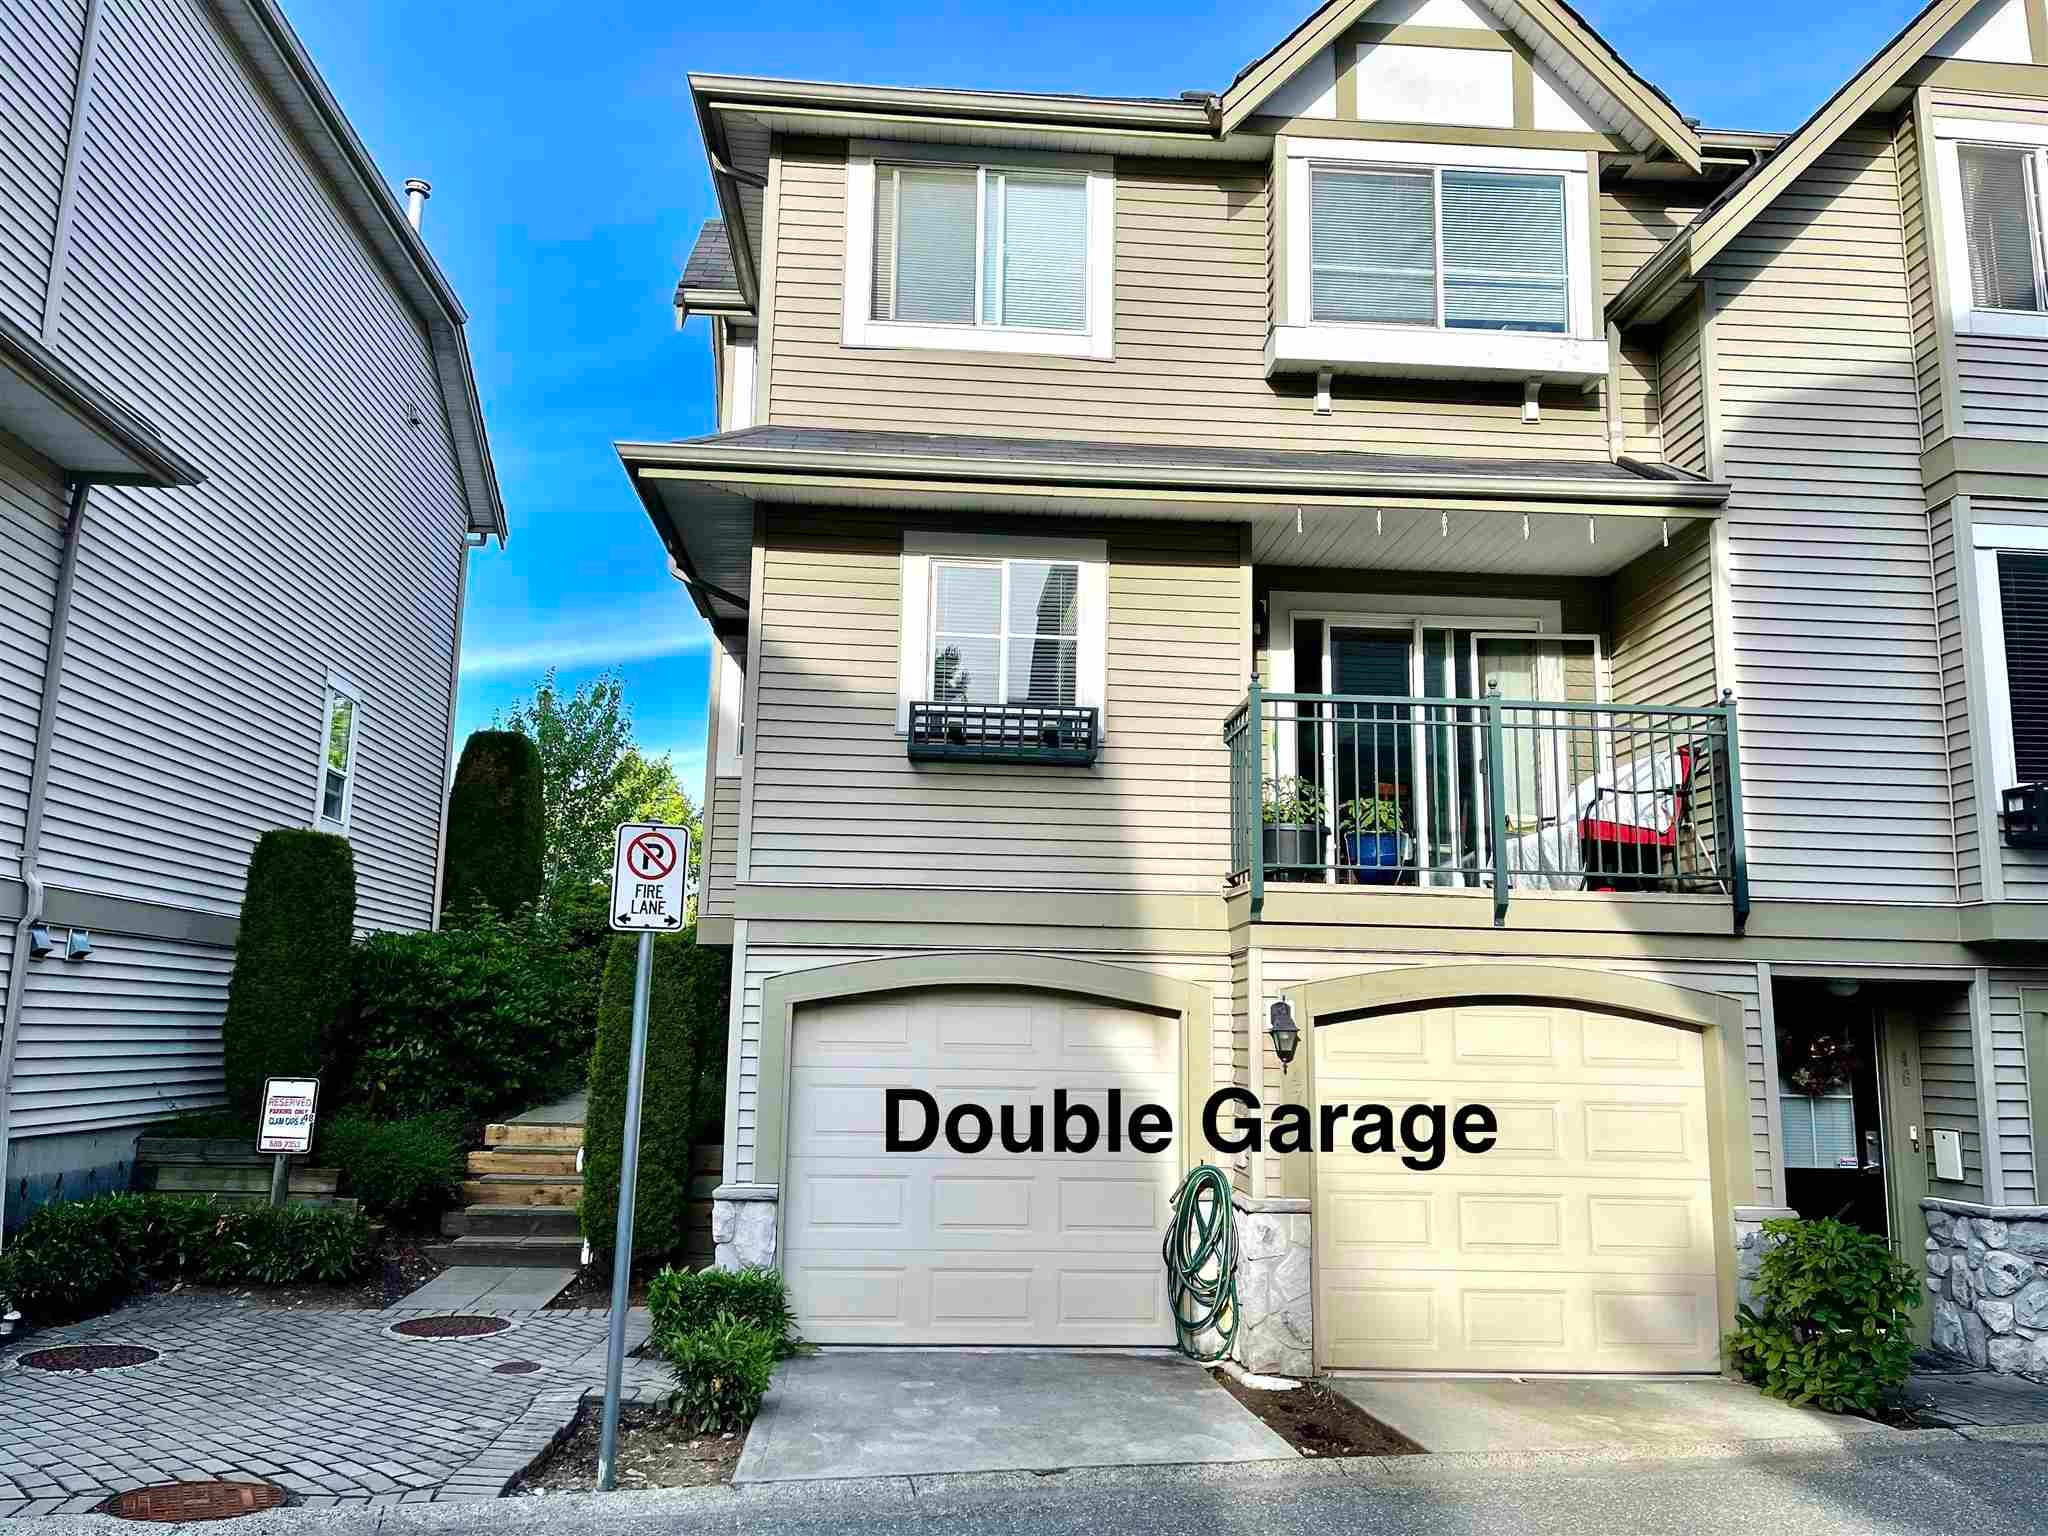 47 15488 101A AVENUE - Guildford Townhouse for sale, 3 Bedrooms (R2593939) - #1